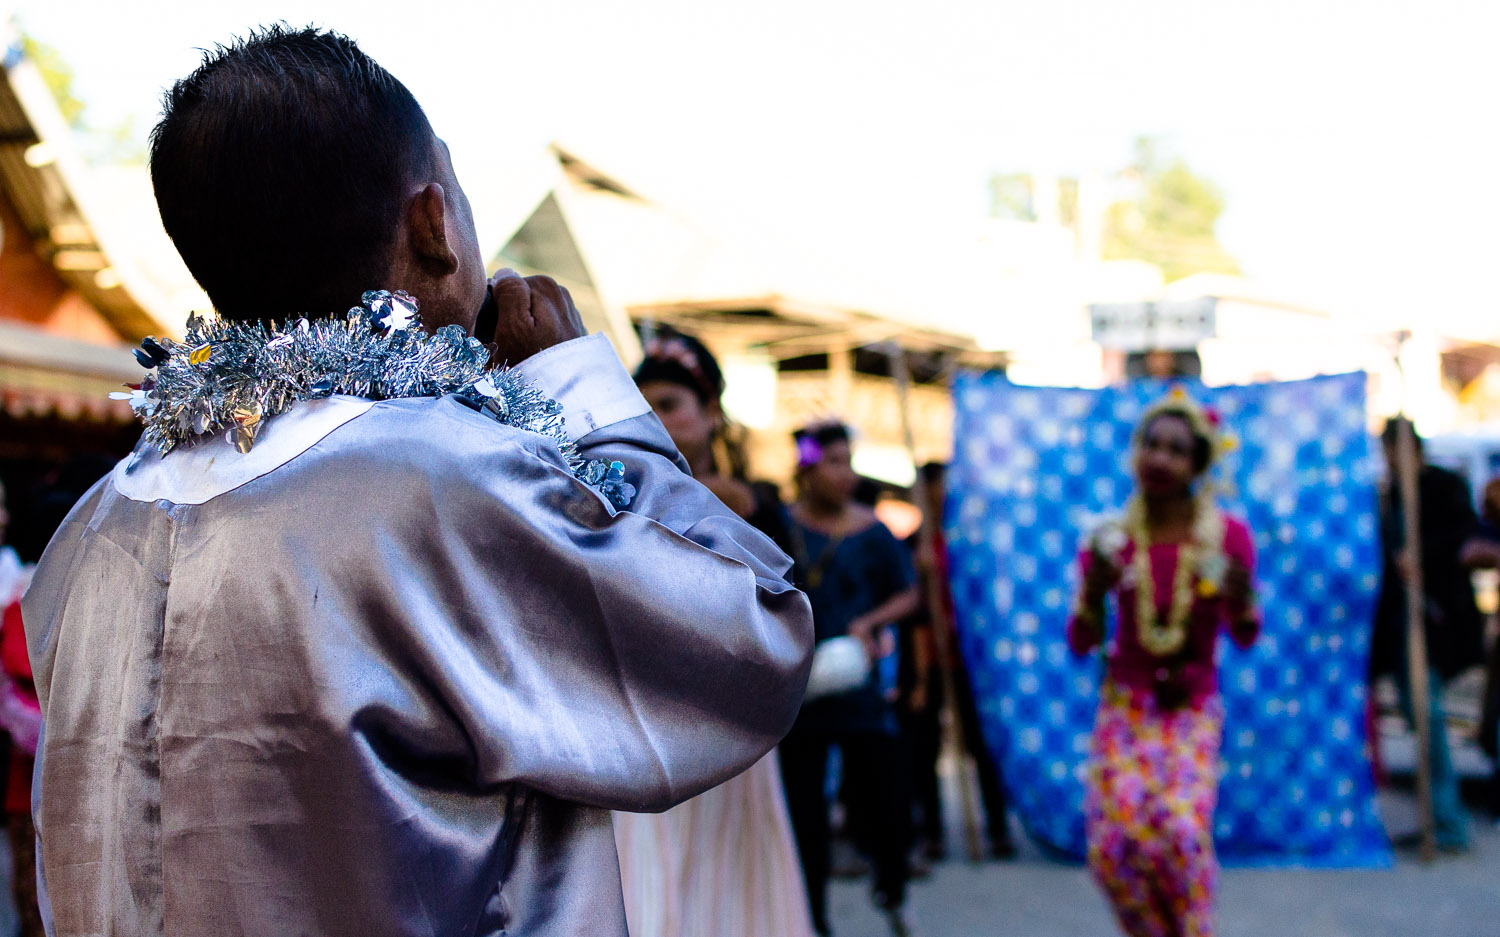 The star of the show is about to arrive.  Myanmar / Burma  © Dustin Main 2014